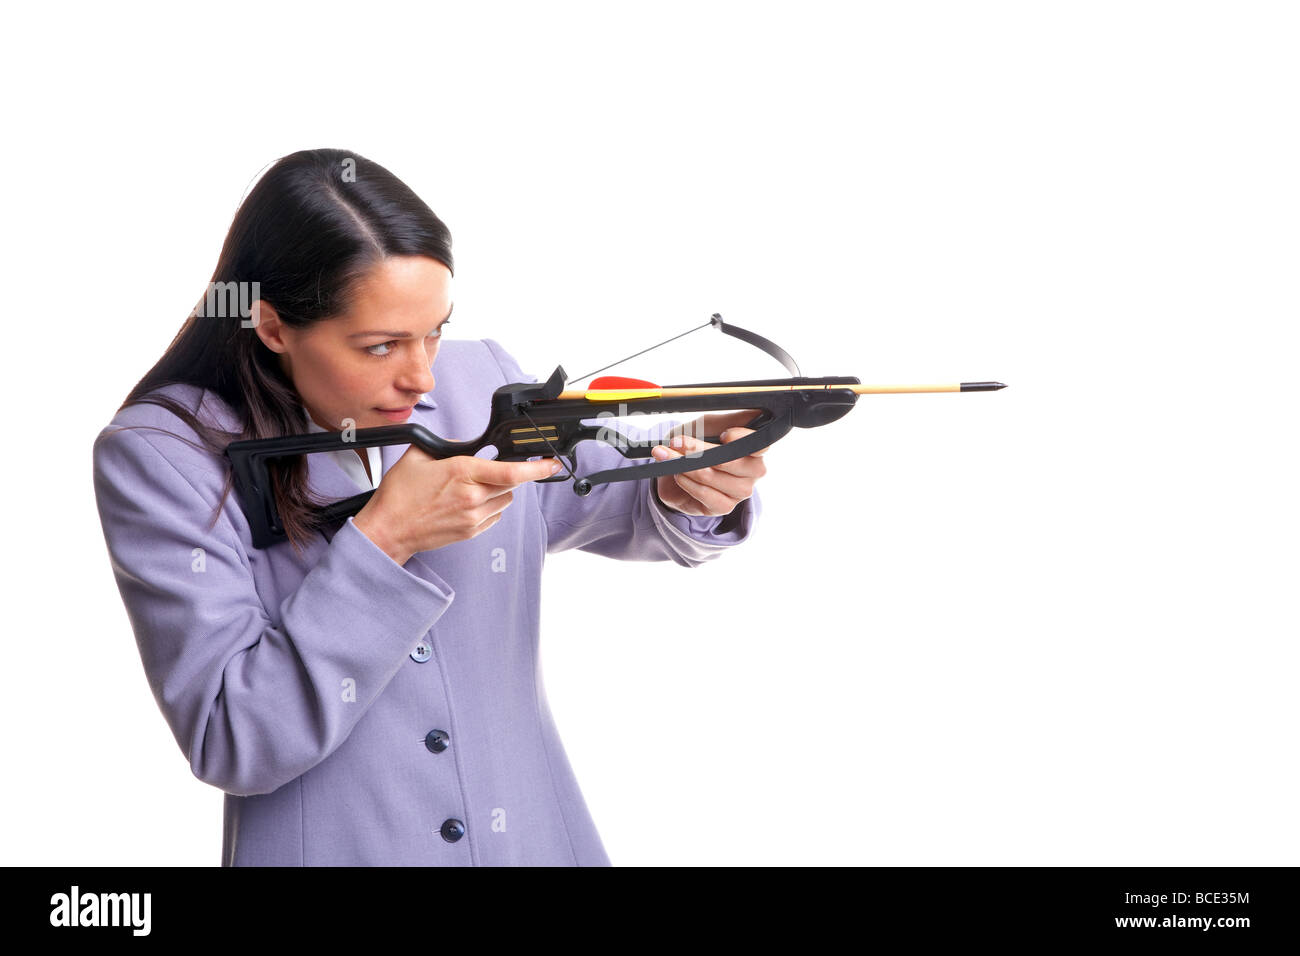 Businesswoman in a suit shooting an arrow from a crossbow as she aims at the target isolated on a white background - Stock Image